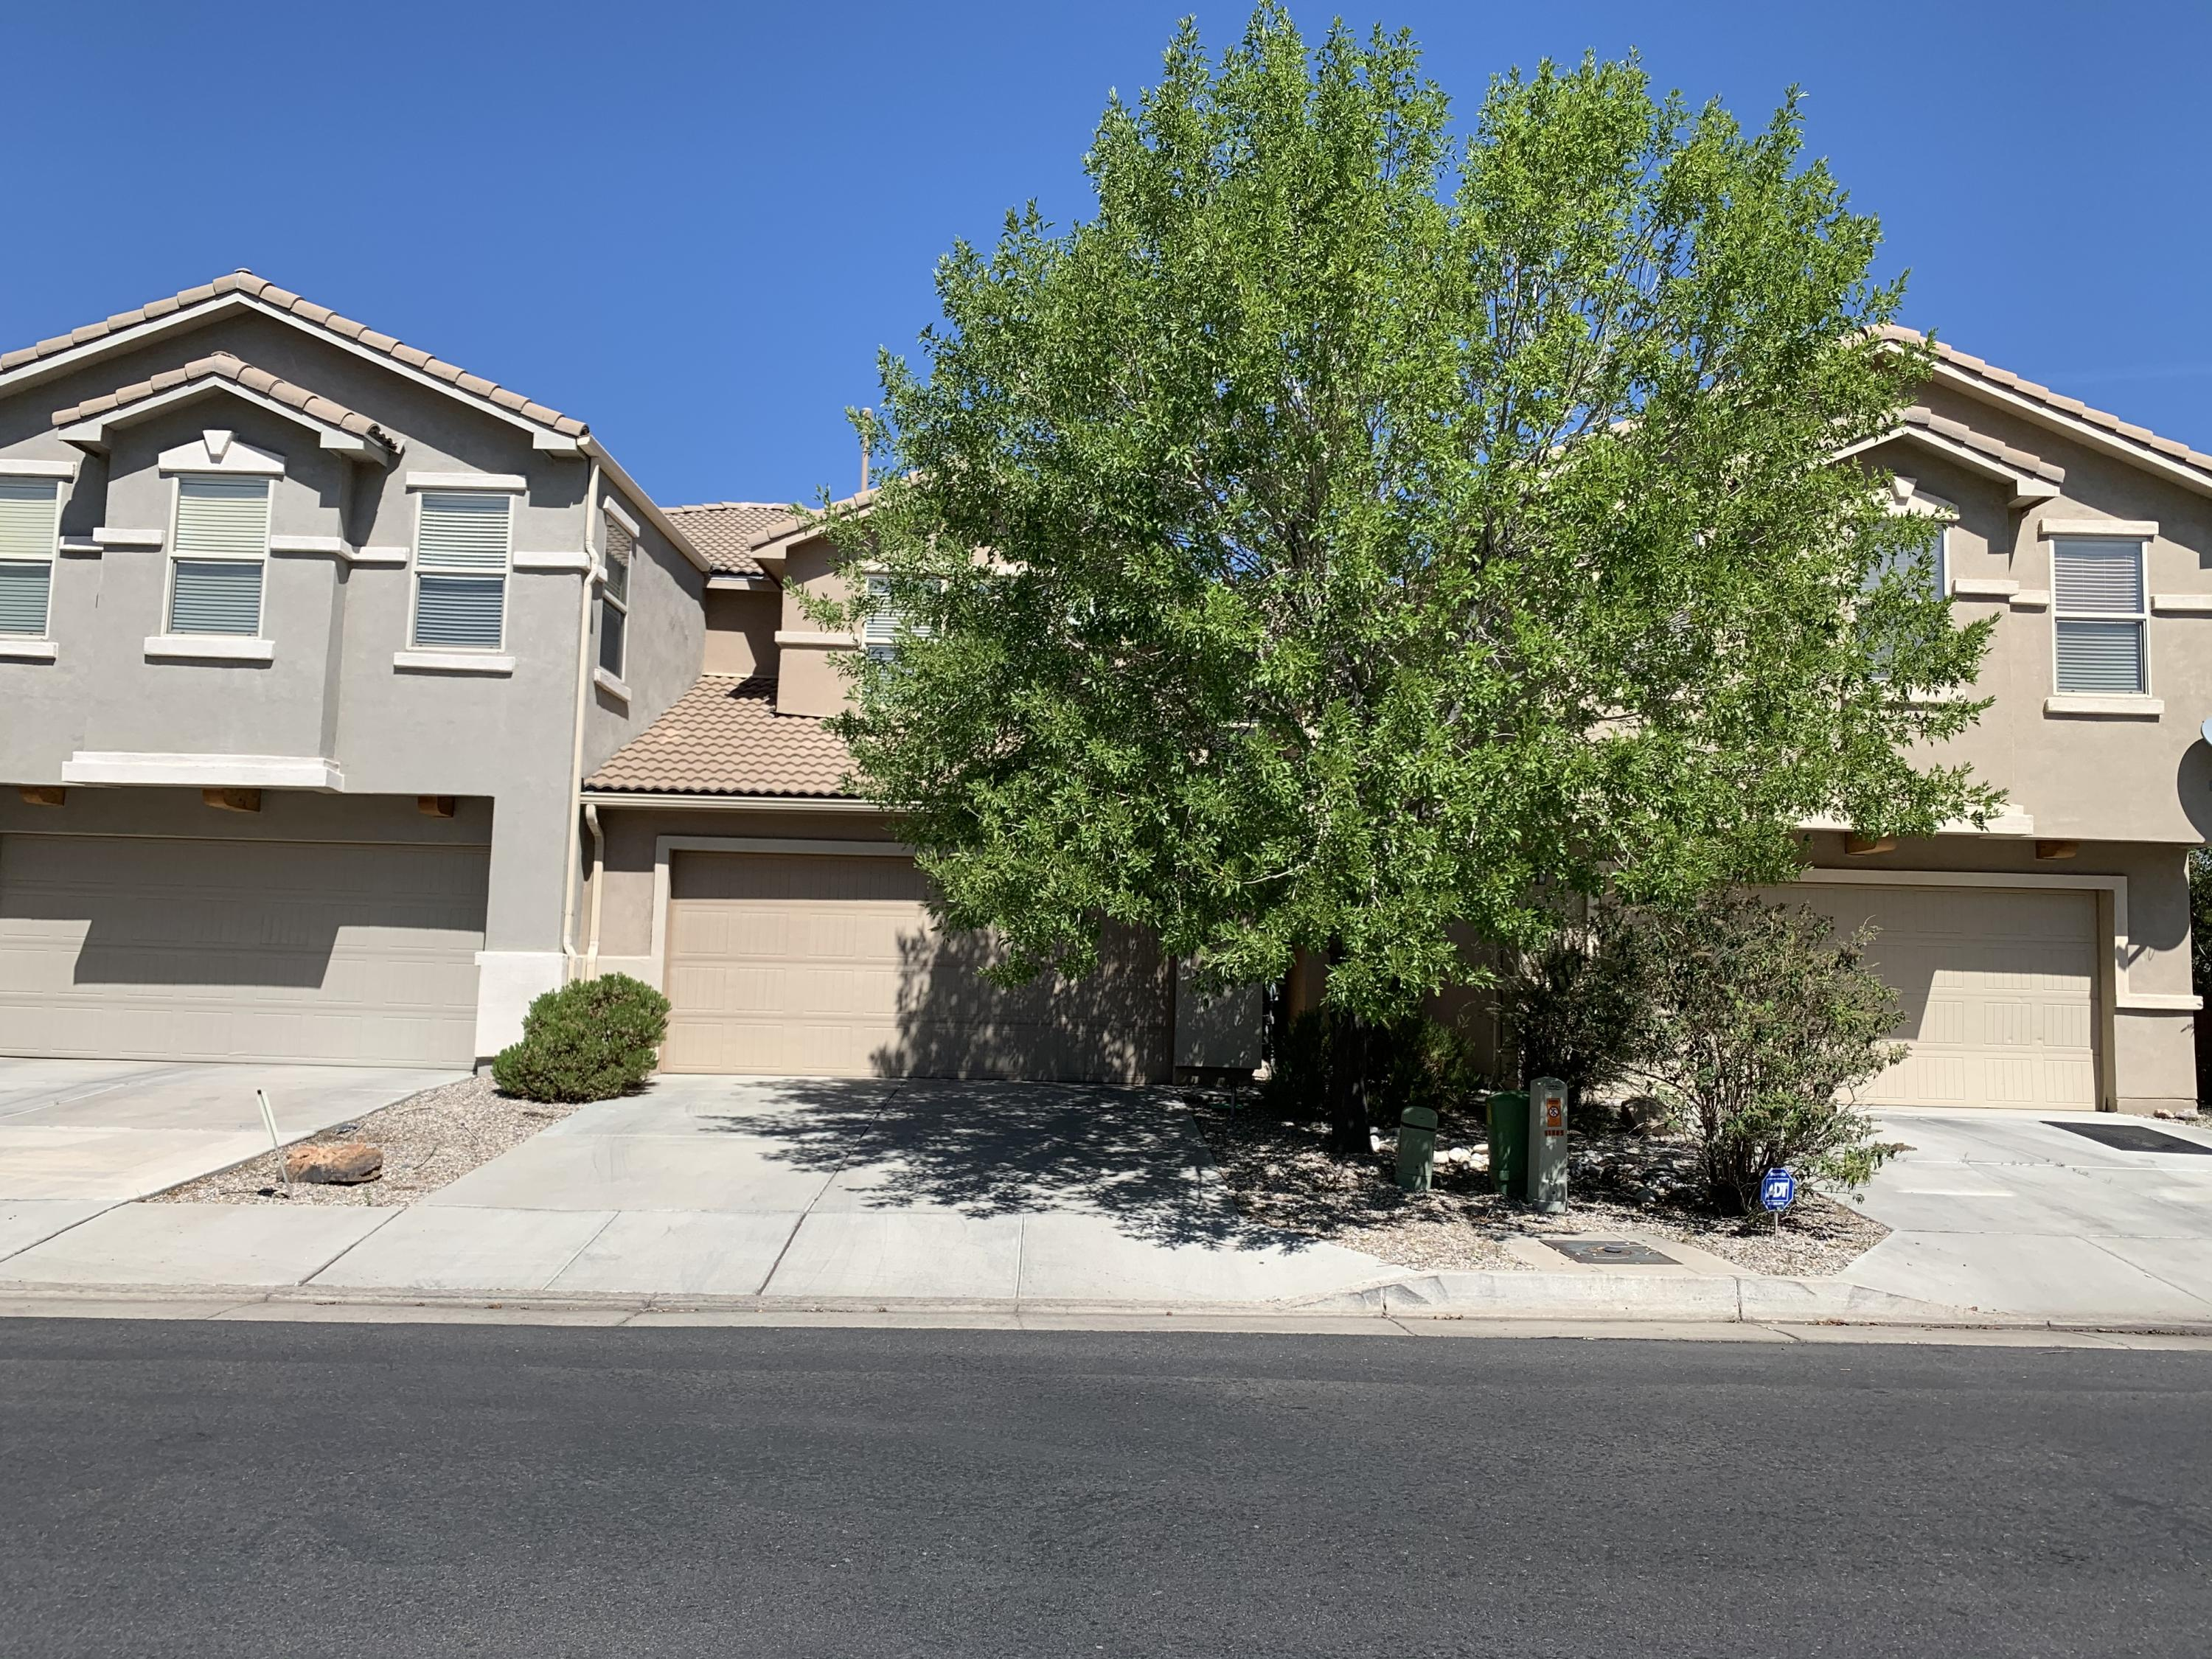 This is a beautiful townhome in a gated community. Open floorplan with lots of natural light. All tile downstairs. Backyard fully landscaped with large patio with little maintenance. Beautiful views of the Sandias. Community clubhouse, gym and community grounds landscaped with walking trails. Owner willing to give $2500 carpet allowance